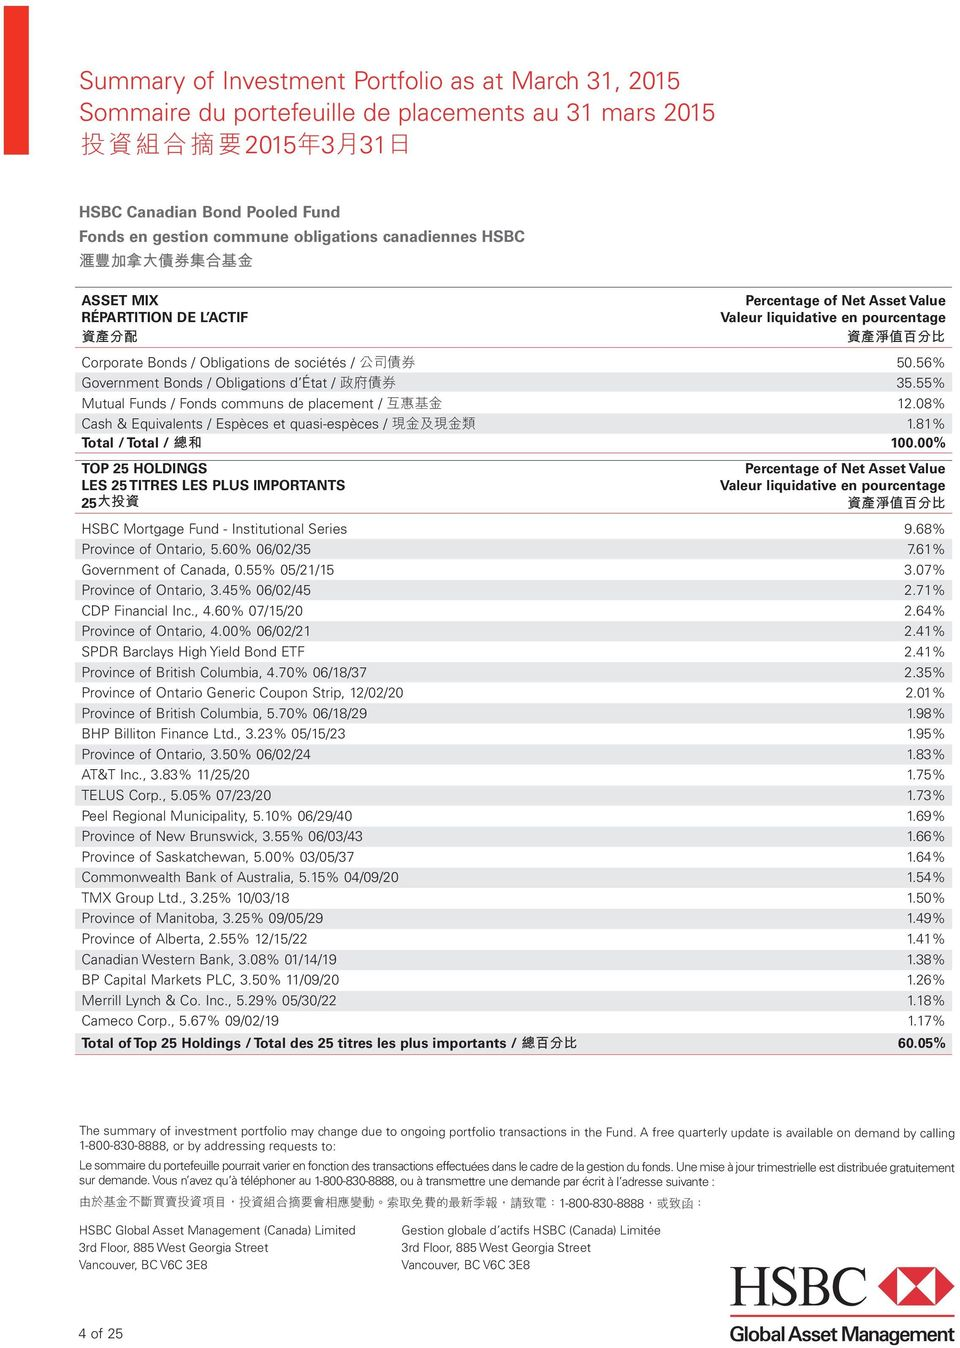 81% TOP 25 HOLDINGS LES 25 TITRES LES PLUS IMPORTANTS 25 大 投 資 HSBC Mortgage Fund - Institutional Series 9.68% Province of Ontario, 5.60% 06/02/35 7.61% Government of Canada, 0.55% 05/21/15 3.